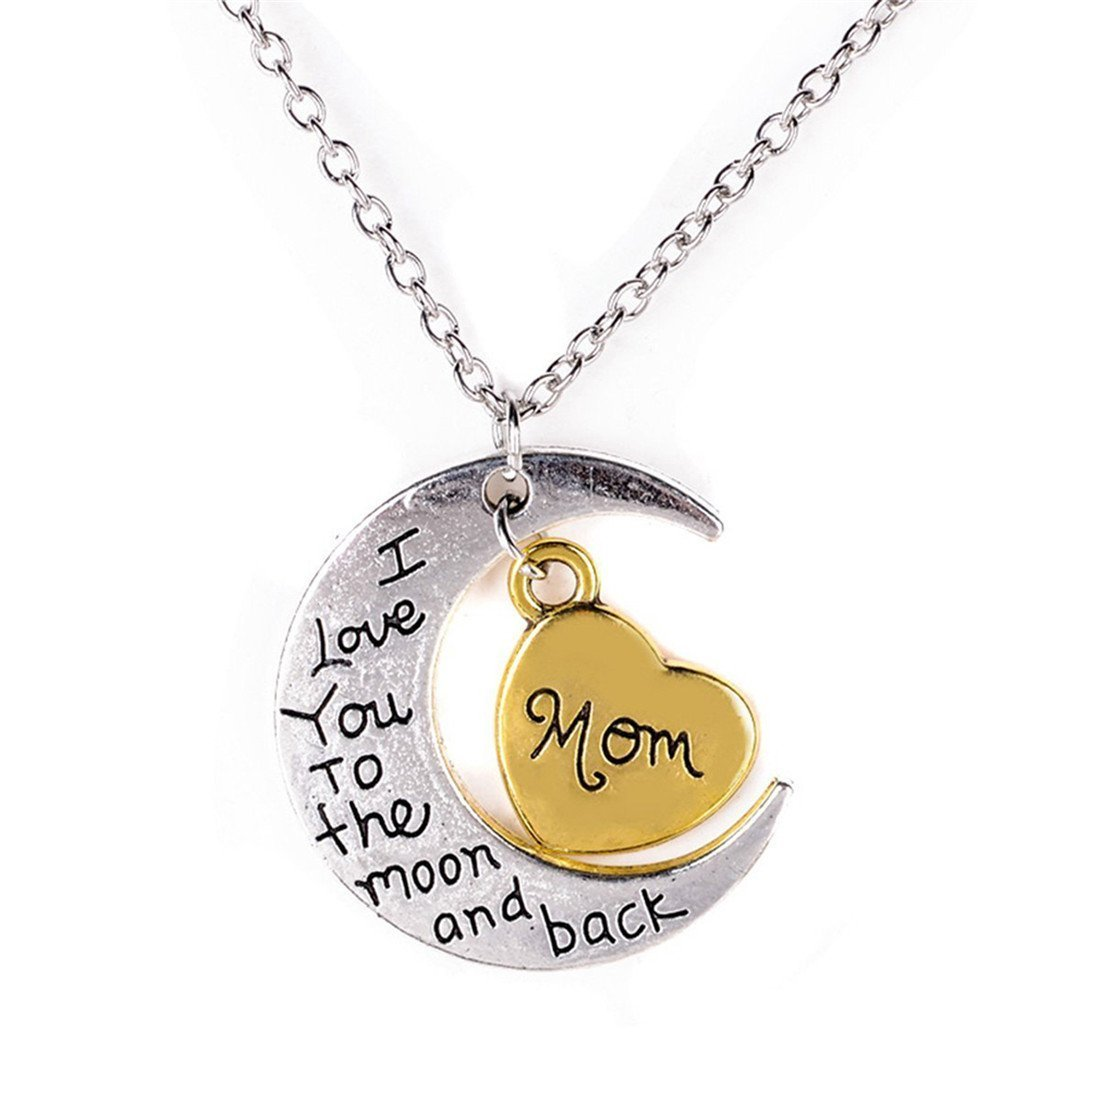 I Love You to the Moon And Back Pendant Necklace For Mom Silver Tone And Gold Tone (i love you mom)